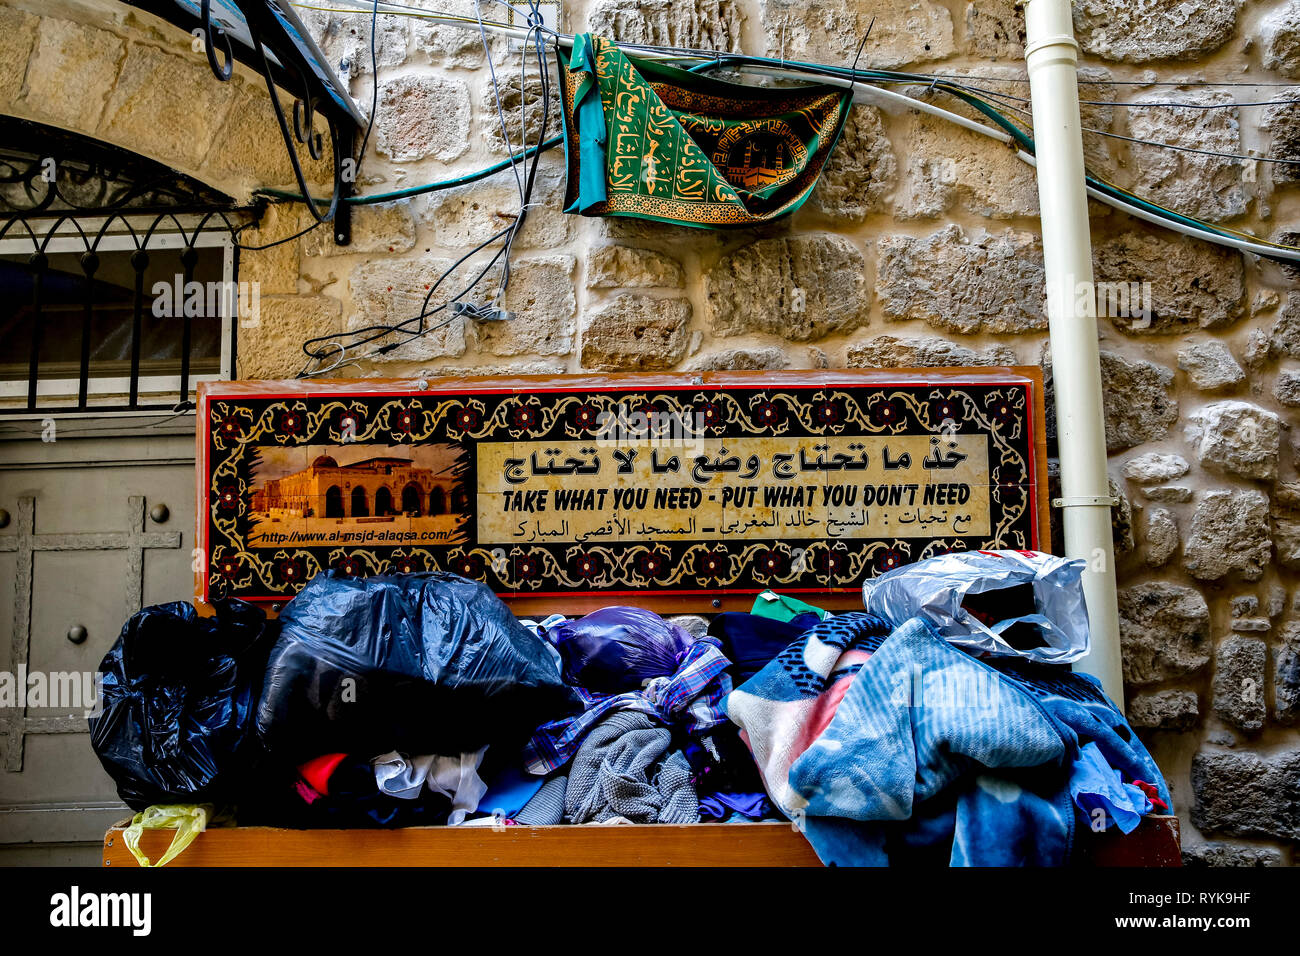 Clothes outside a mosque in Jerusalem Old City, Israel. Stock Photo